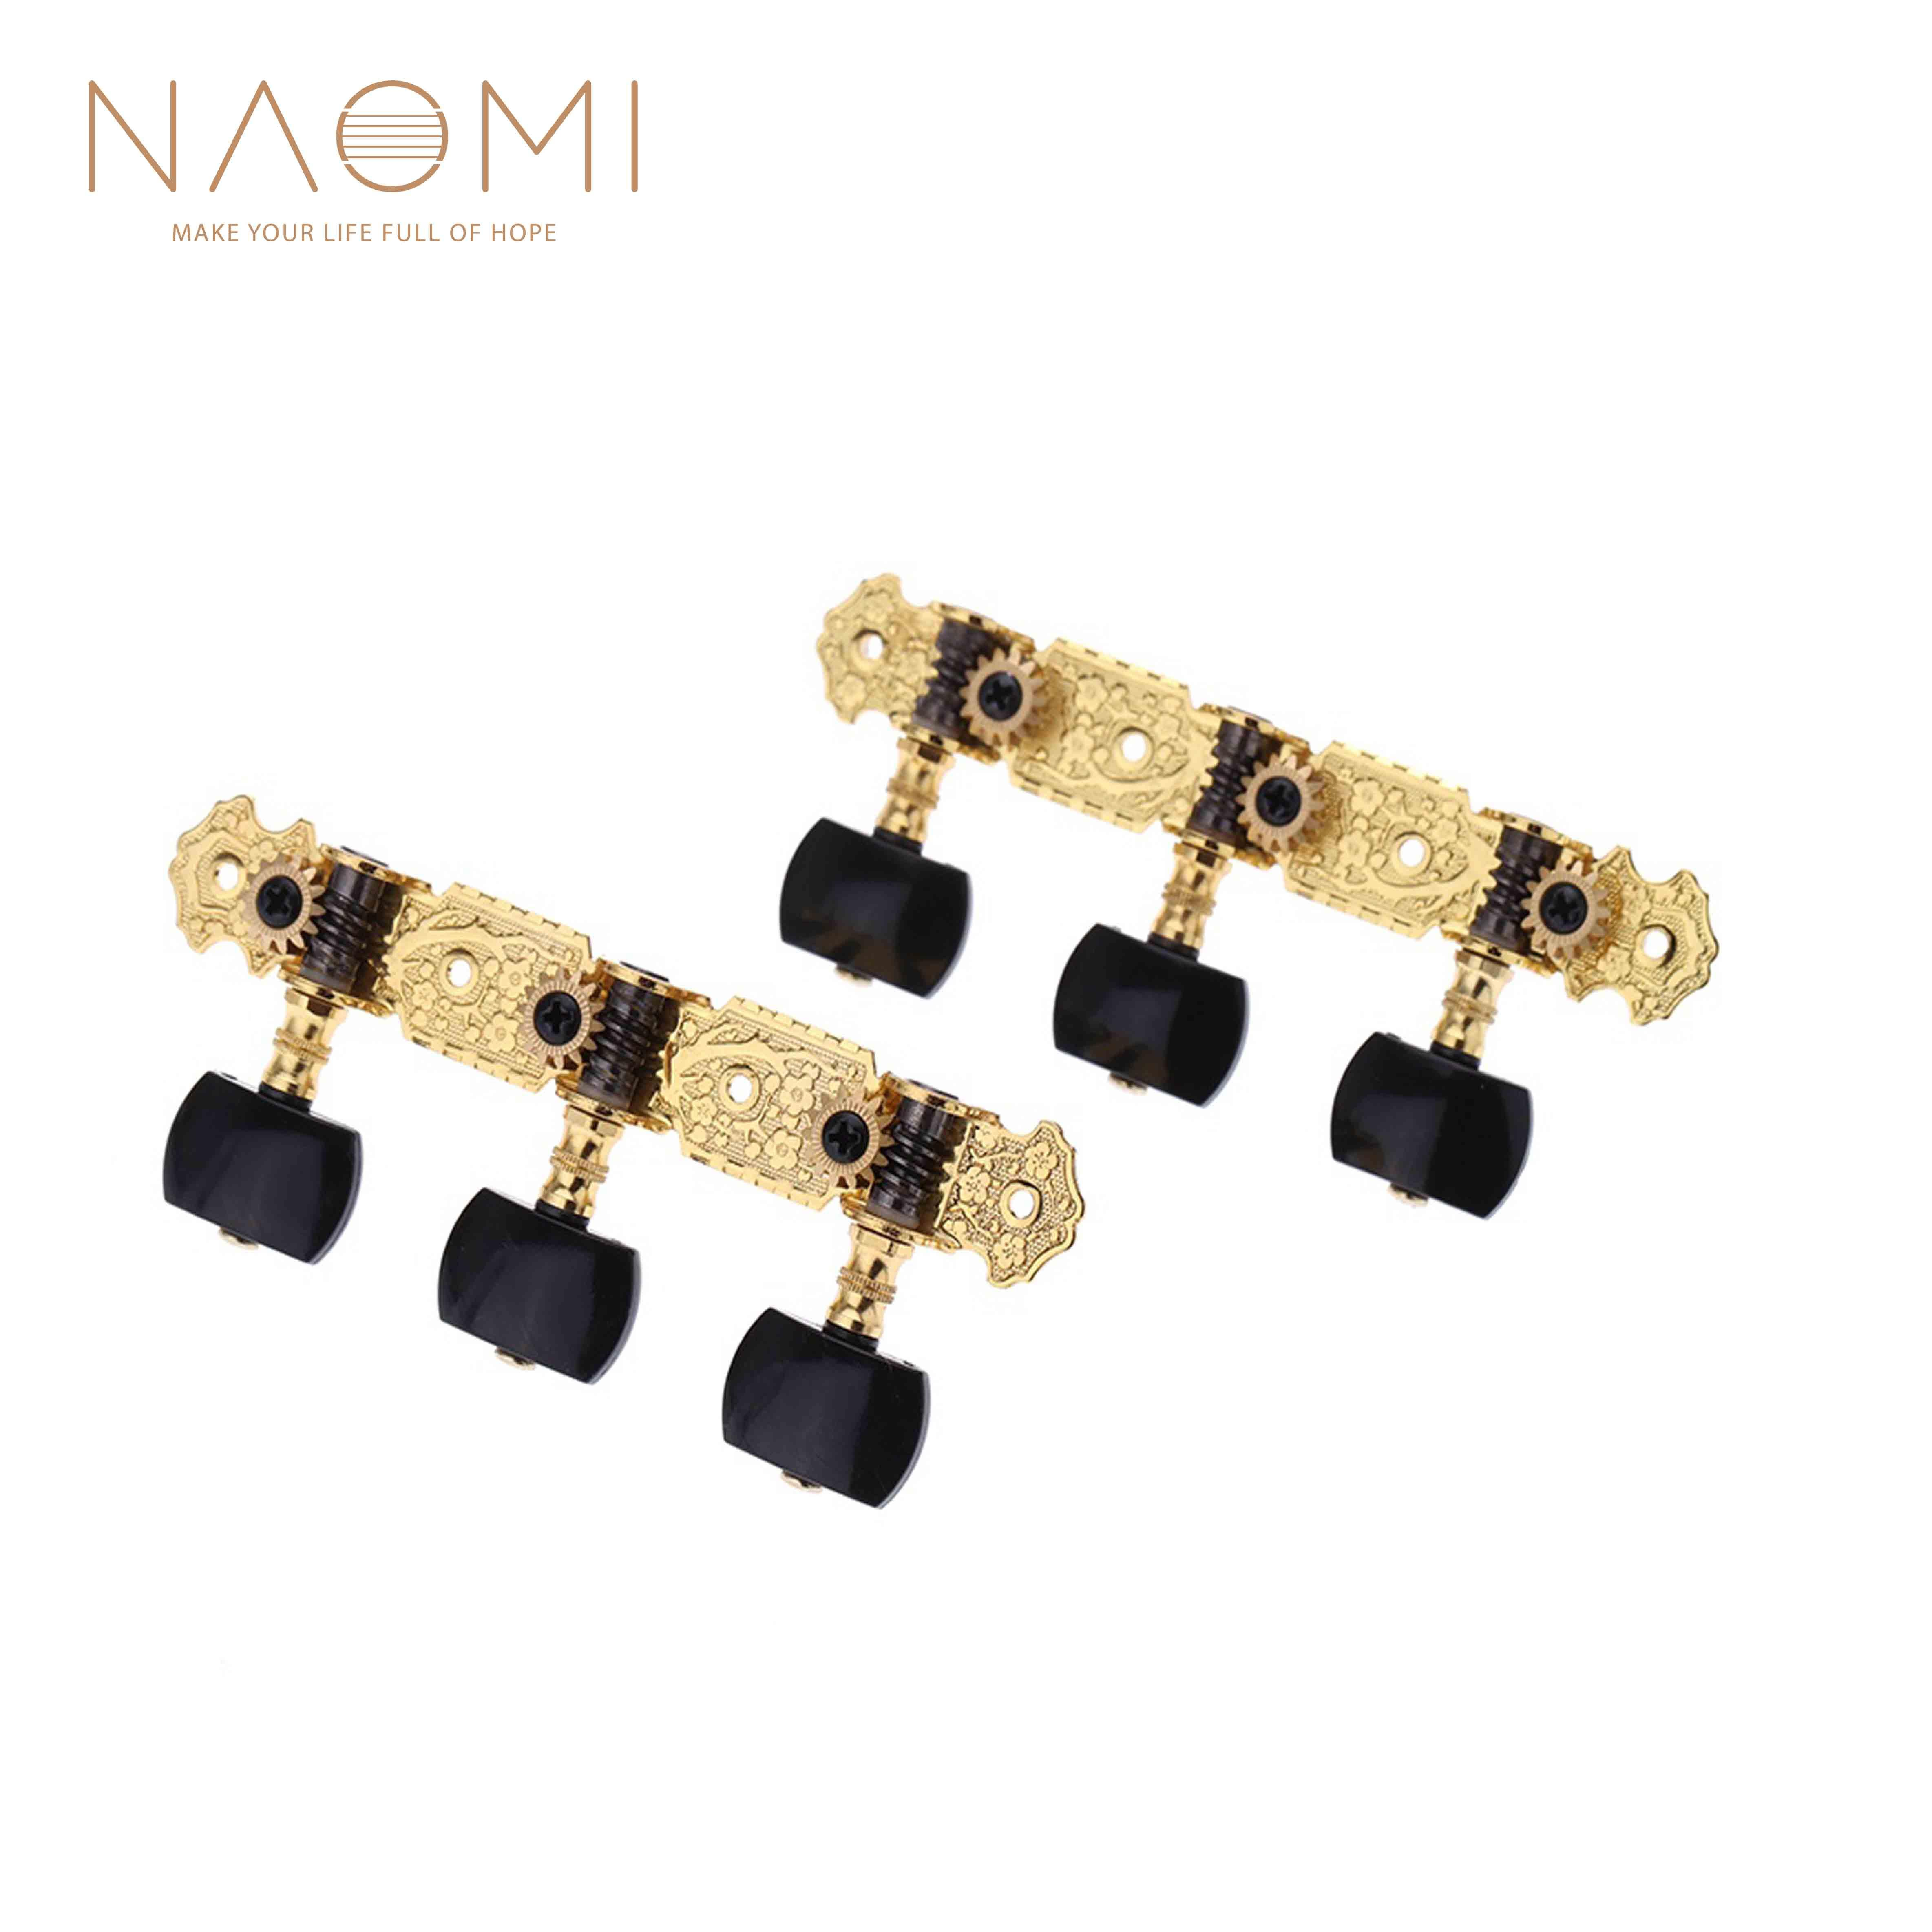 NAOMI Alice Plated Guitar Tuning Pegs Gold-Plated Durable Guitar Machine Heads020B3P Guitar Parts Accessories